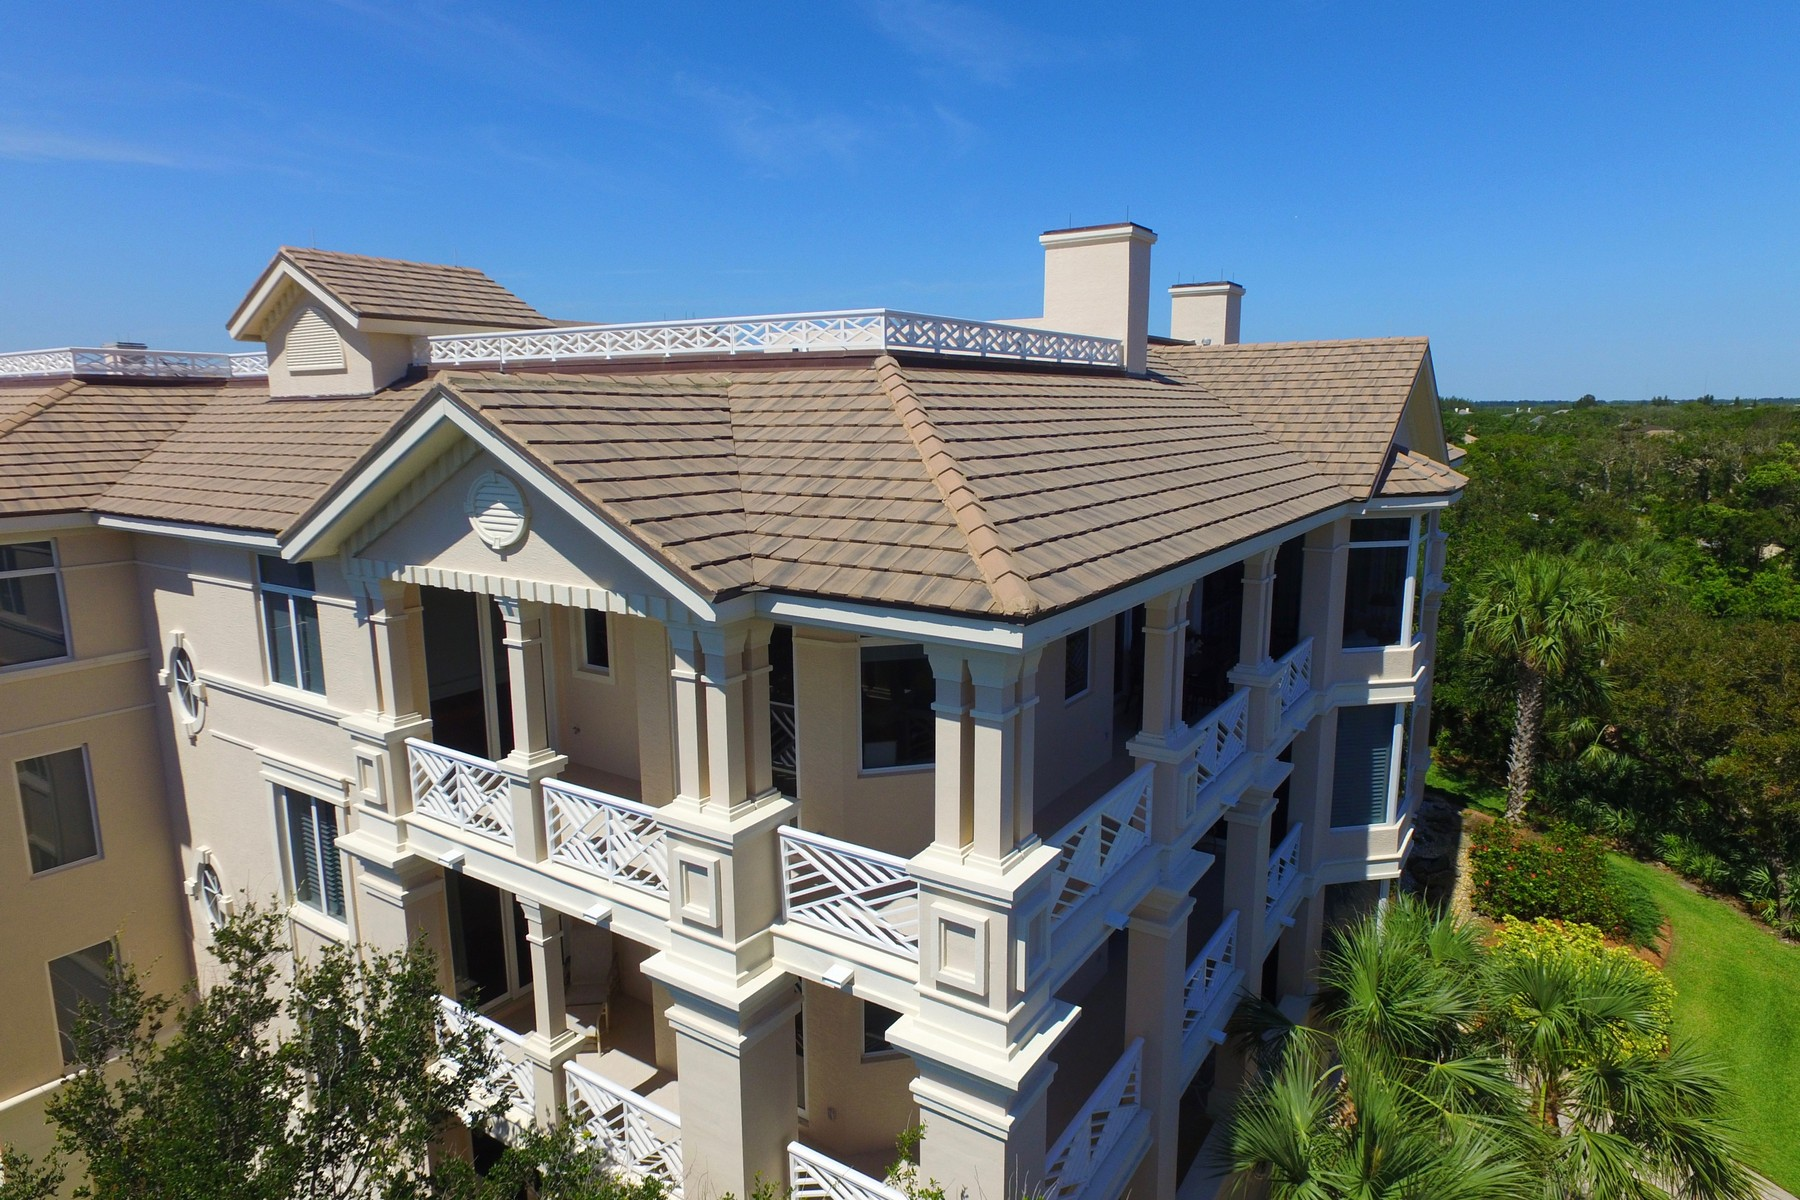 Additional photo for property listing at Breathtaking Ocean and Barrier Island Views from this Luxurious Penthouse 701 N Swim Club Drive #4B Vero Beach, Florida 32963 United States